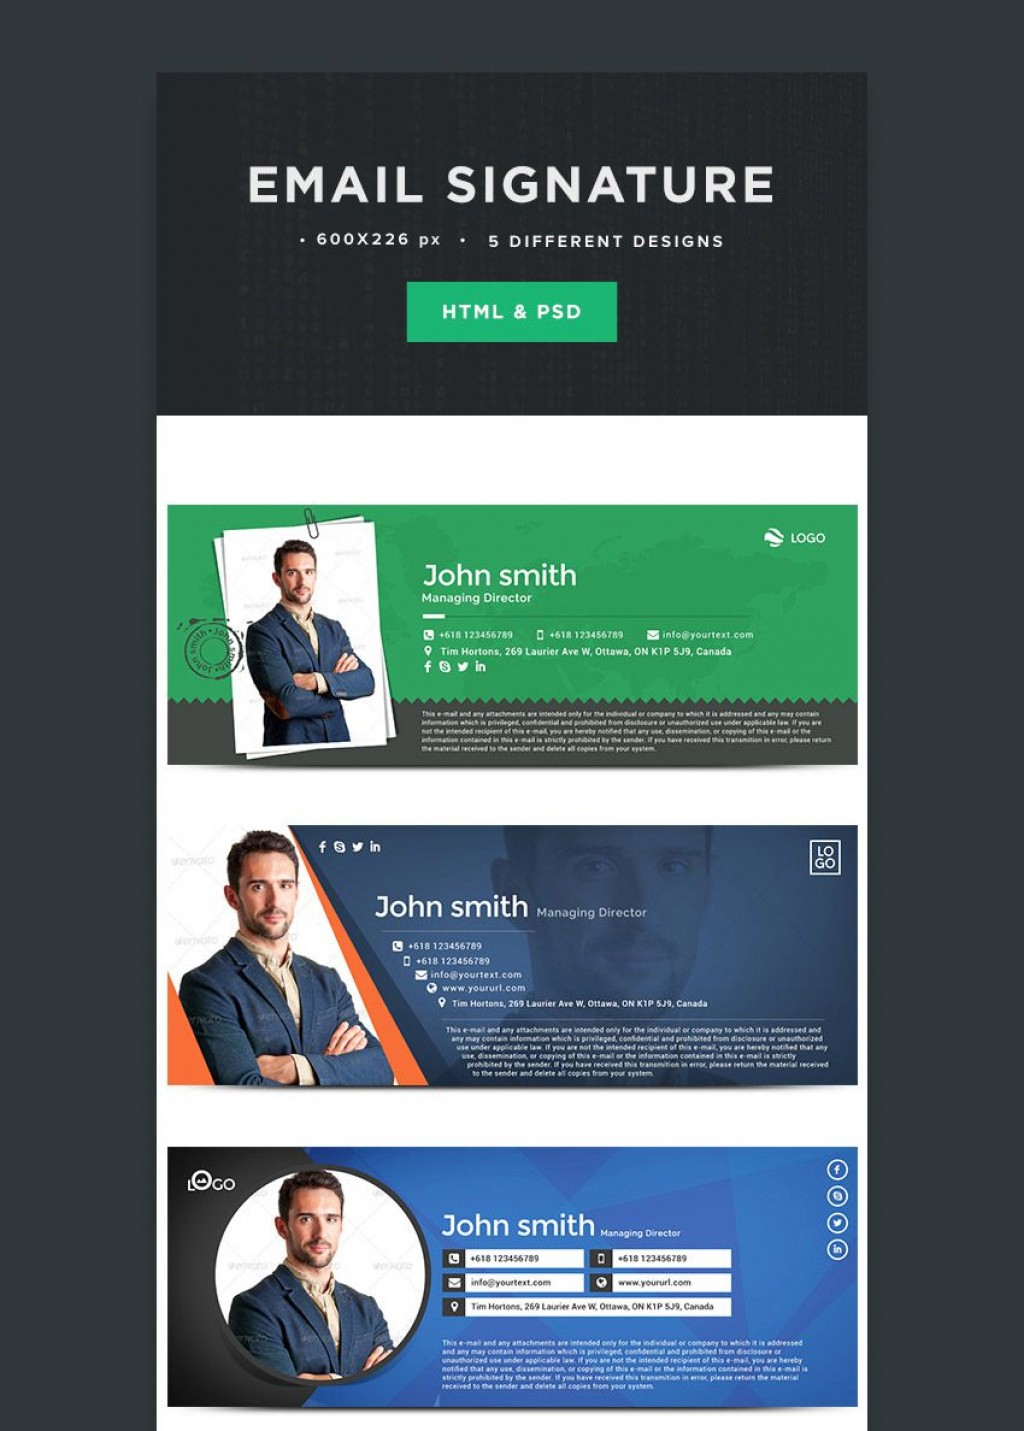 004 Awful Professional Email Signature Template Picture  Templates Busines Example Outlook Certification InLarge